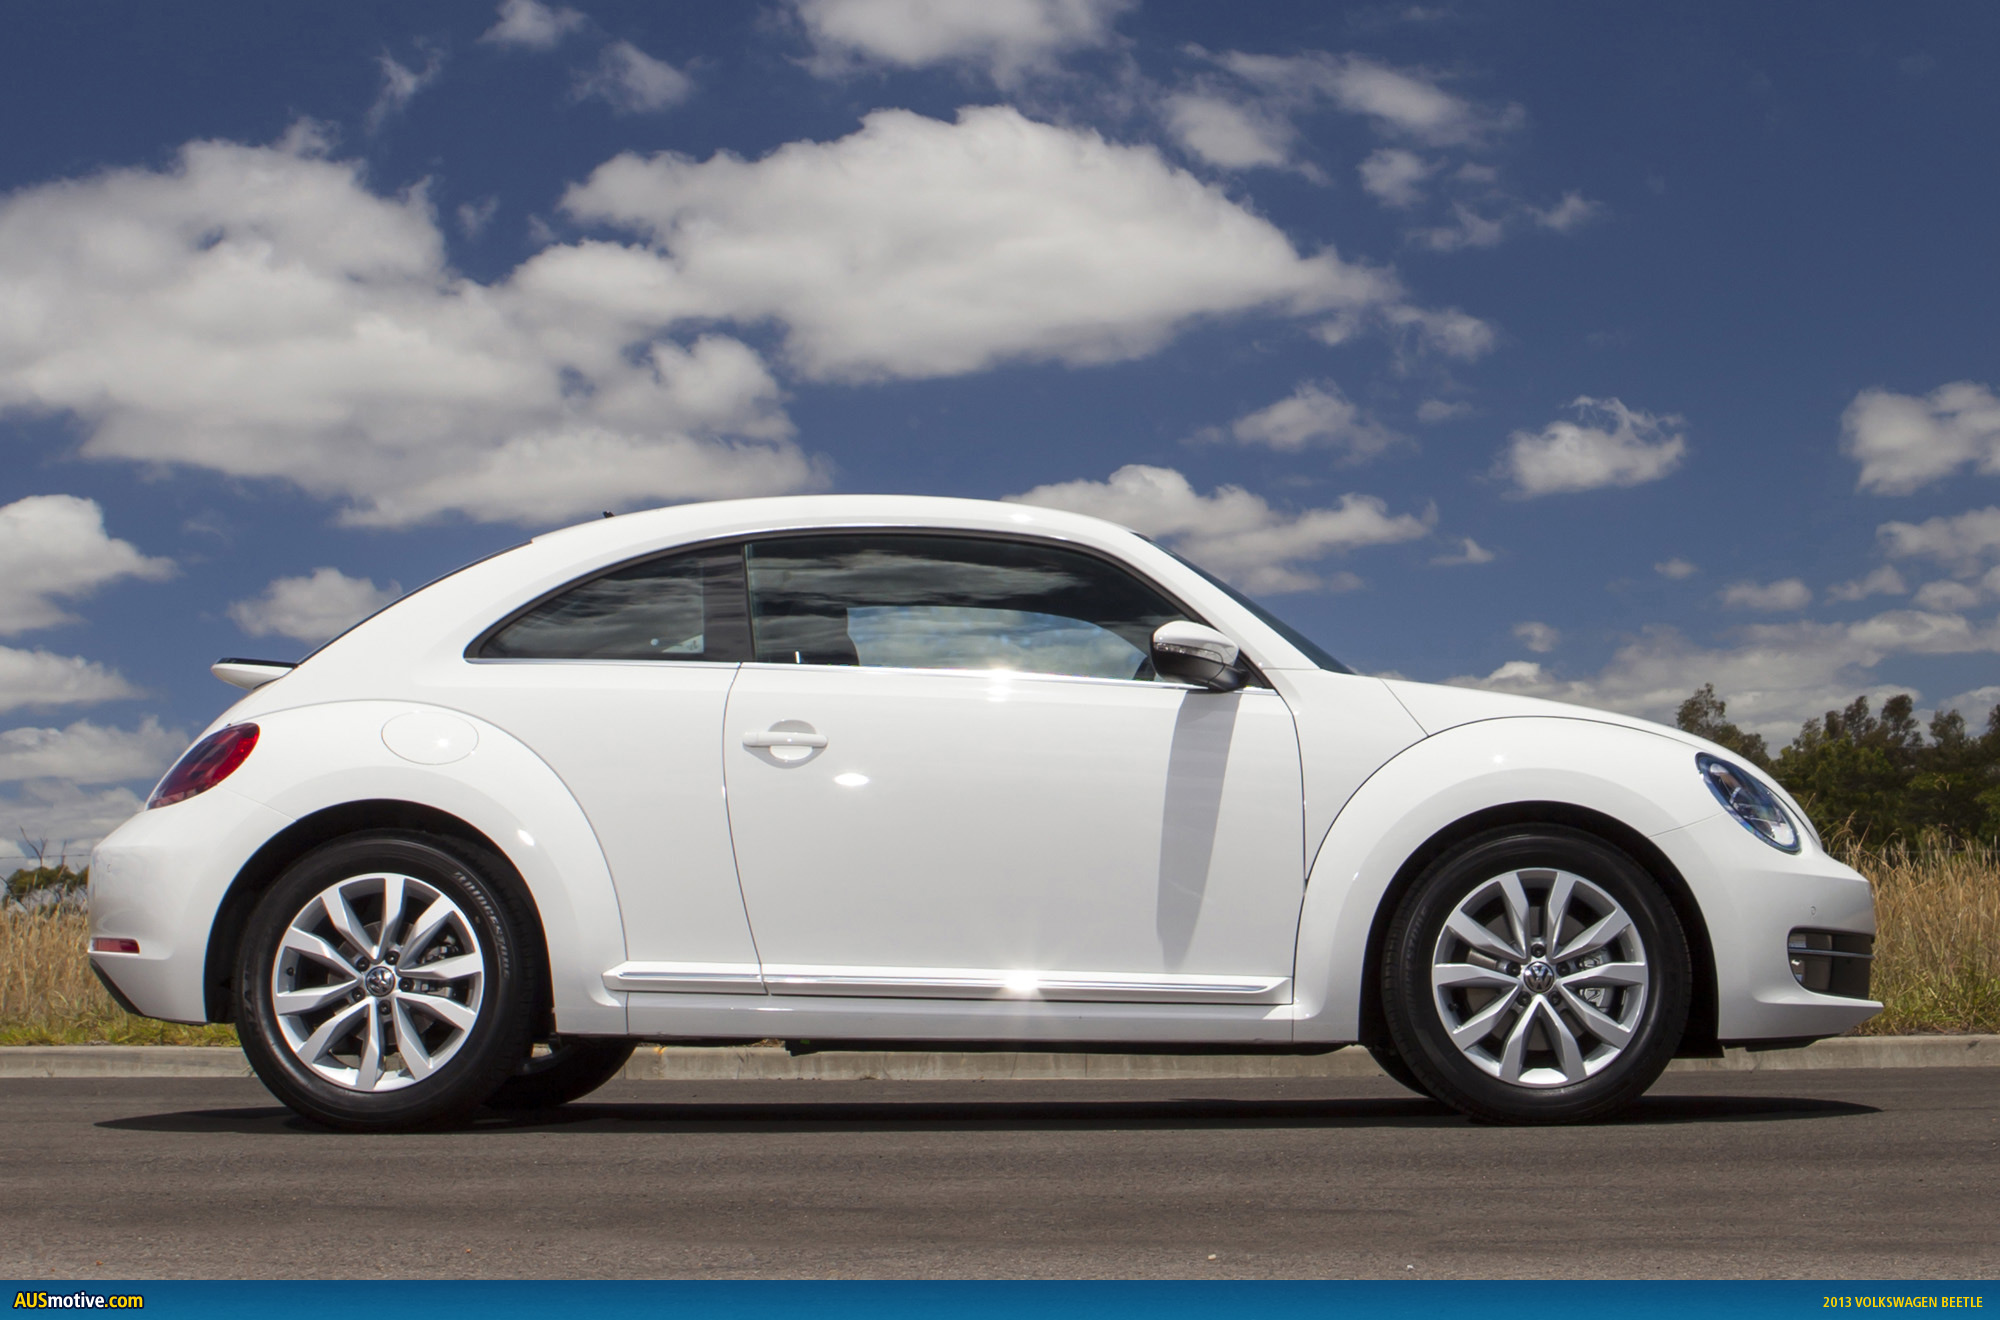 AUSmotive.com » 2013 VW Beetle – Australian pricing & specs